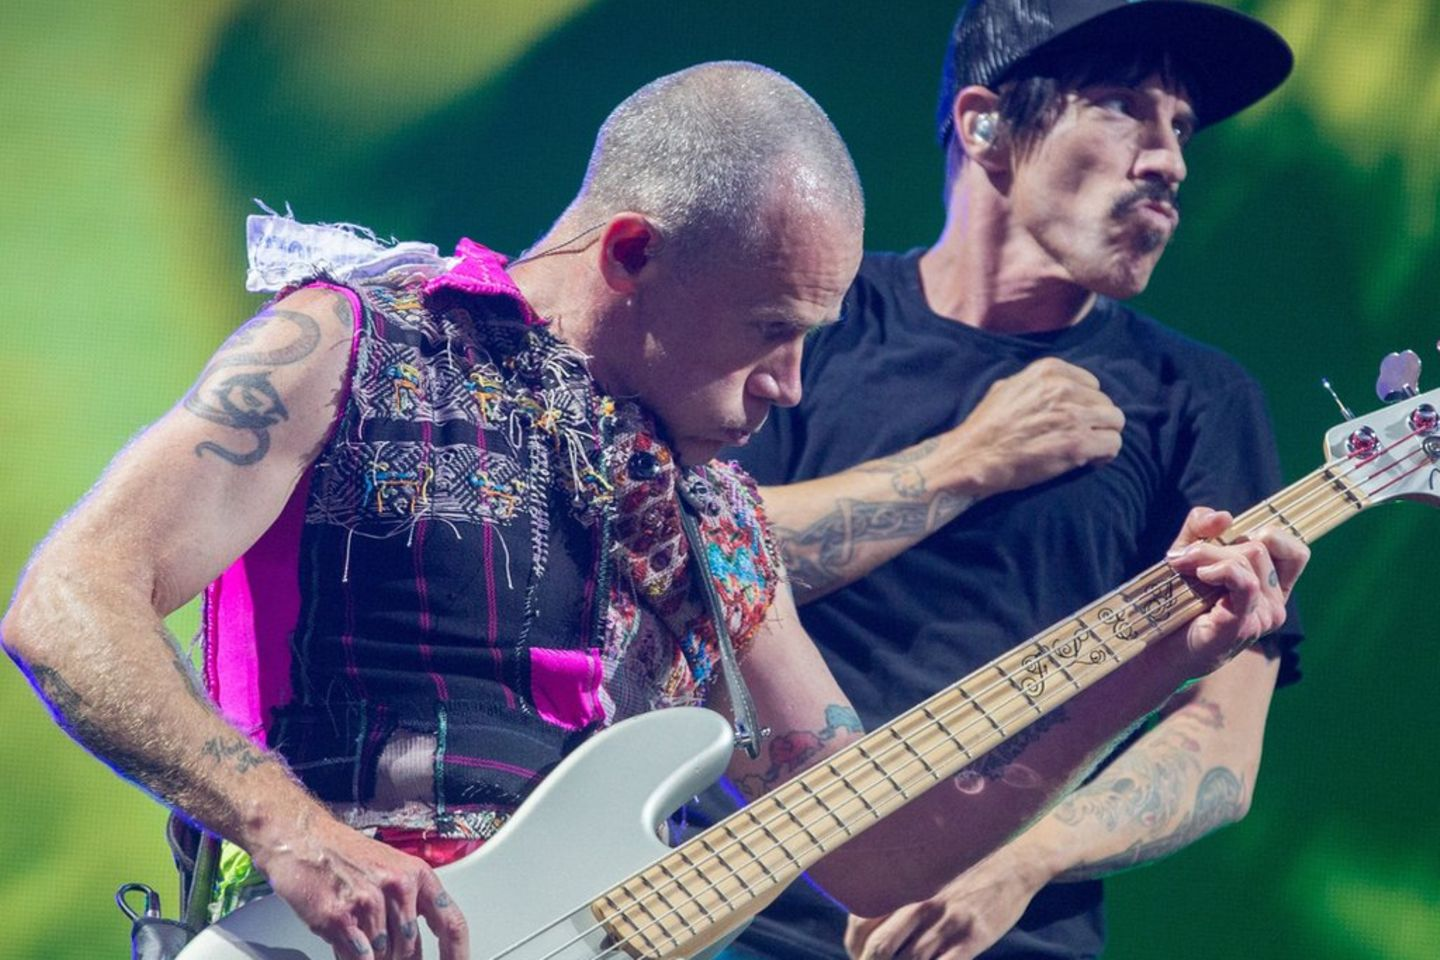 Die Red Hot Chili Peppers in Aktion.